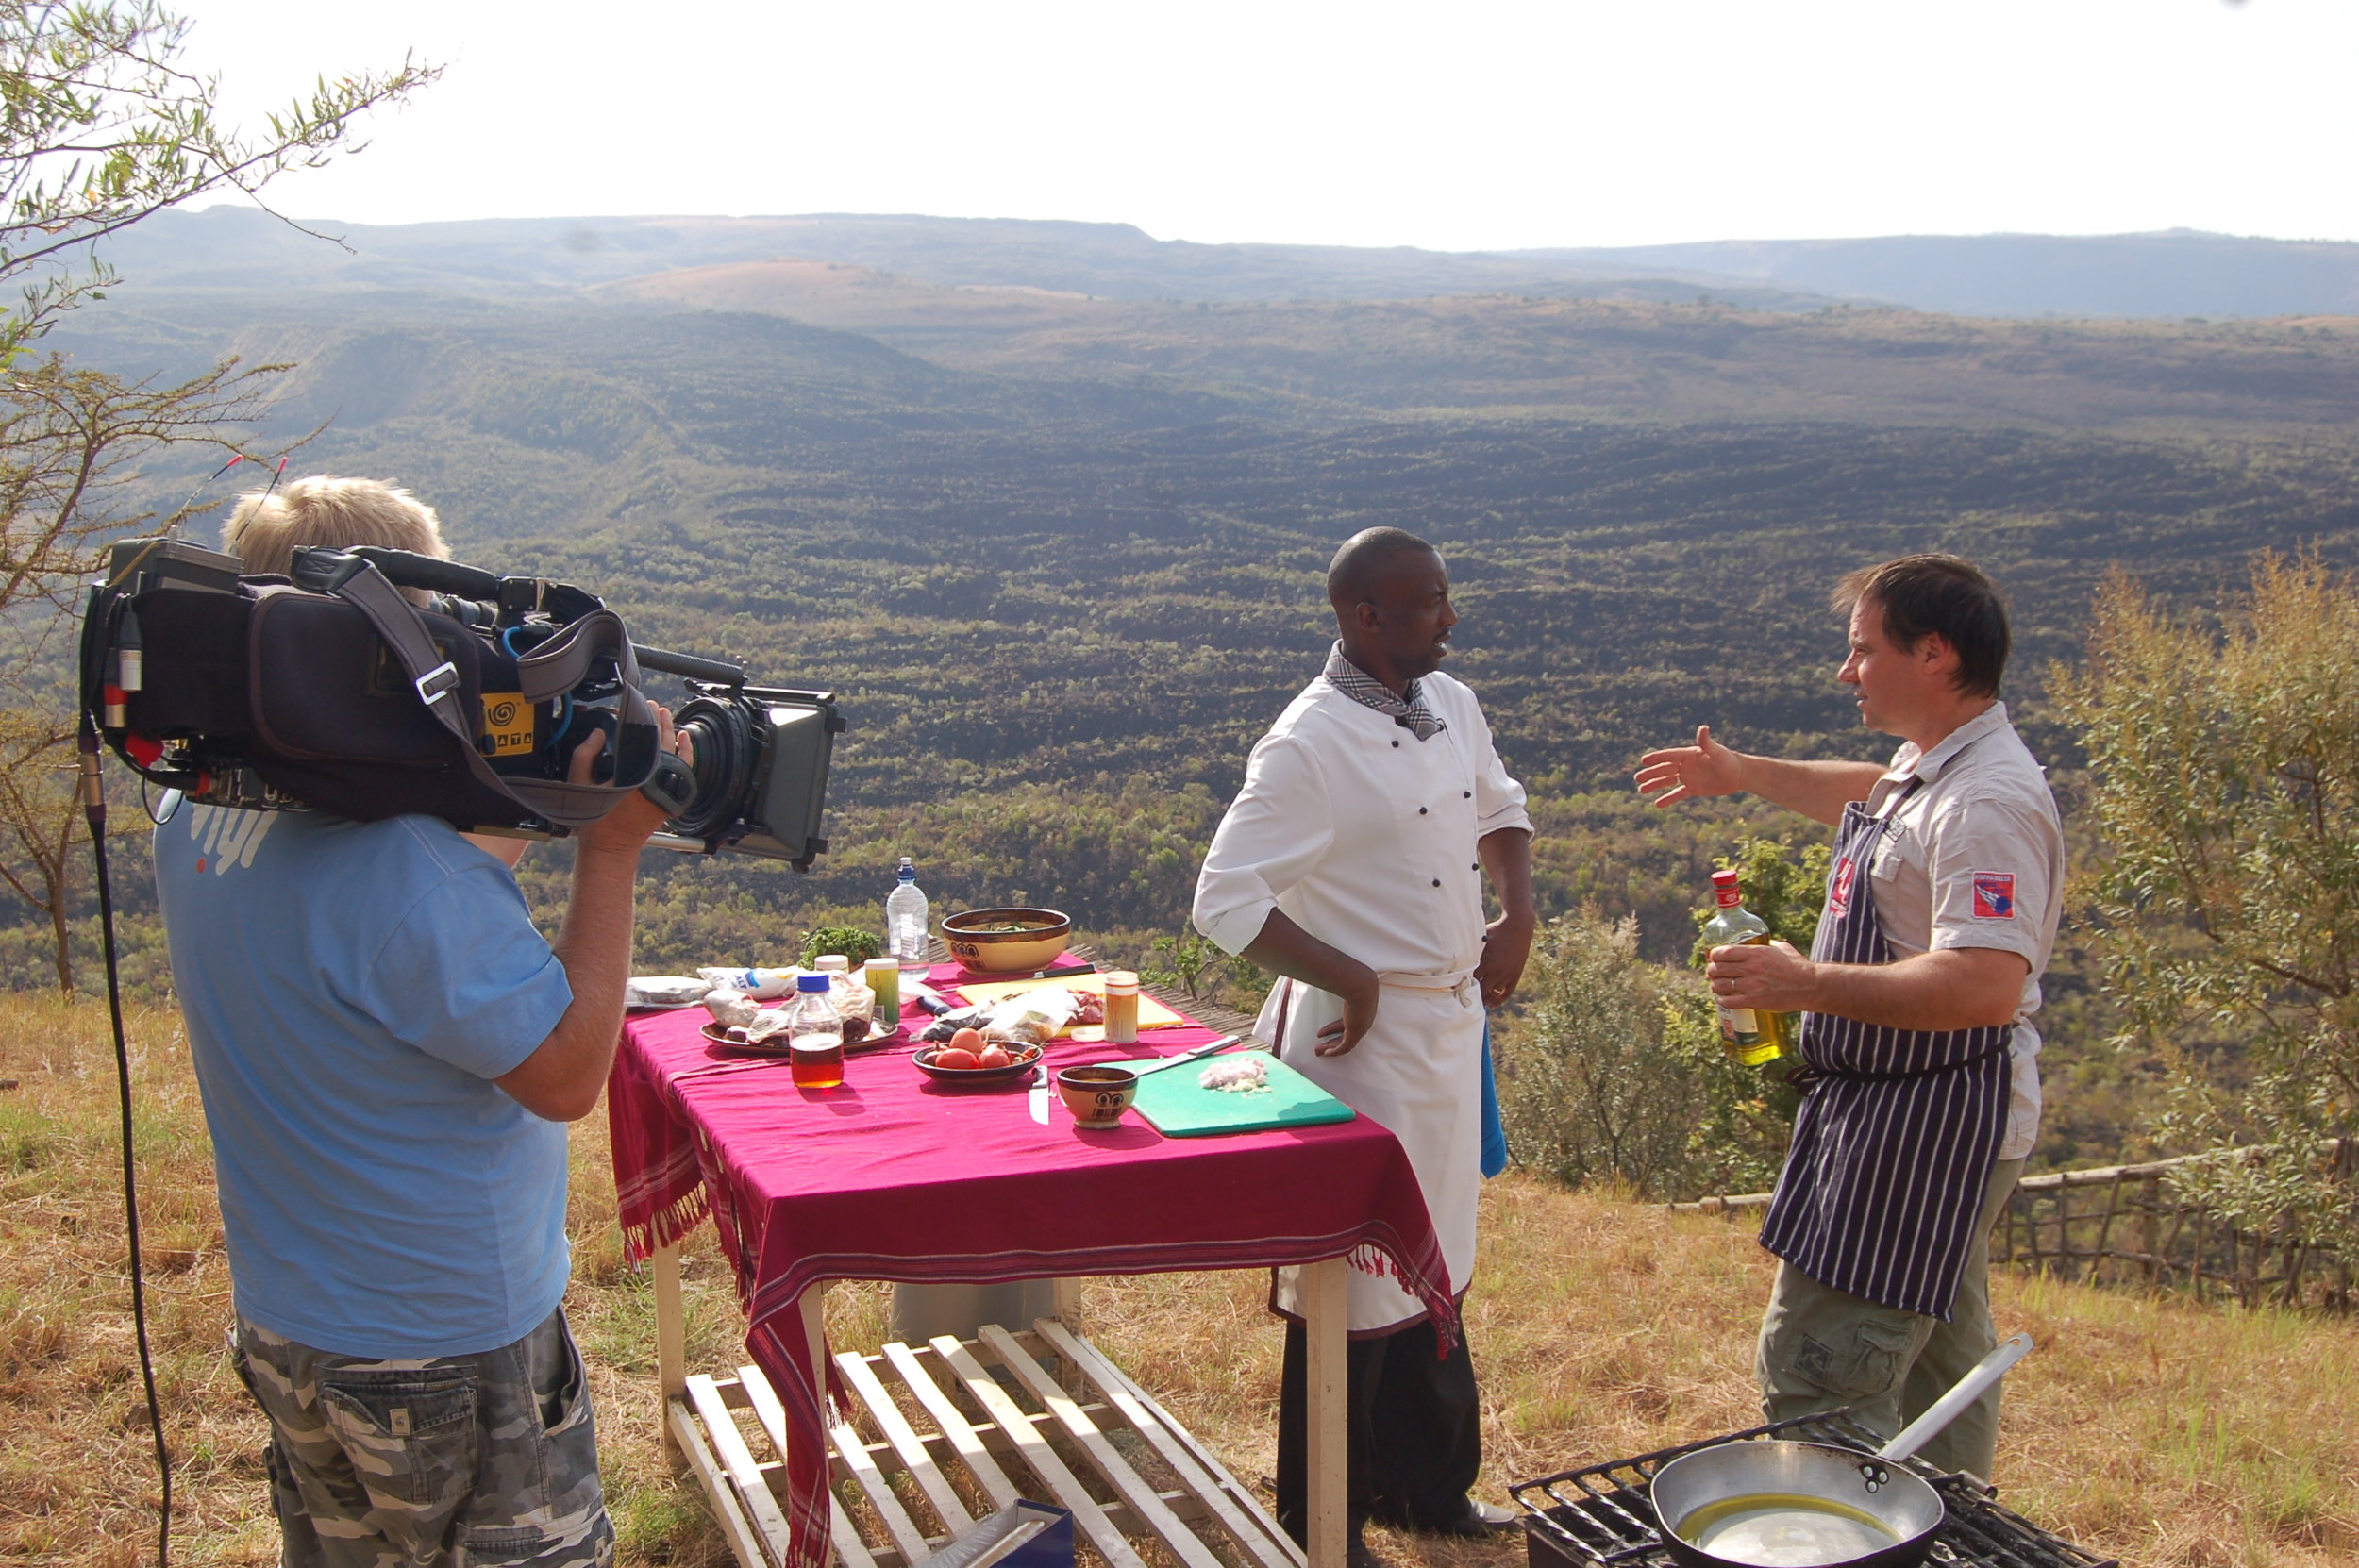 Shooting on a mountainside in Kenya